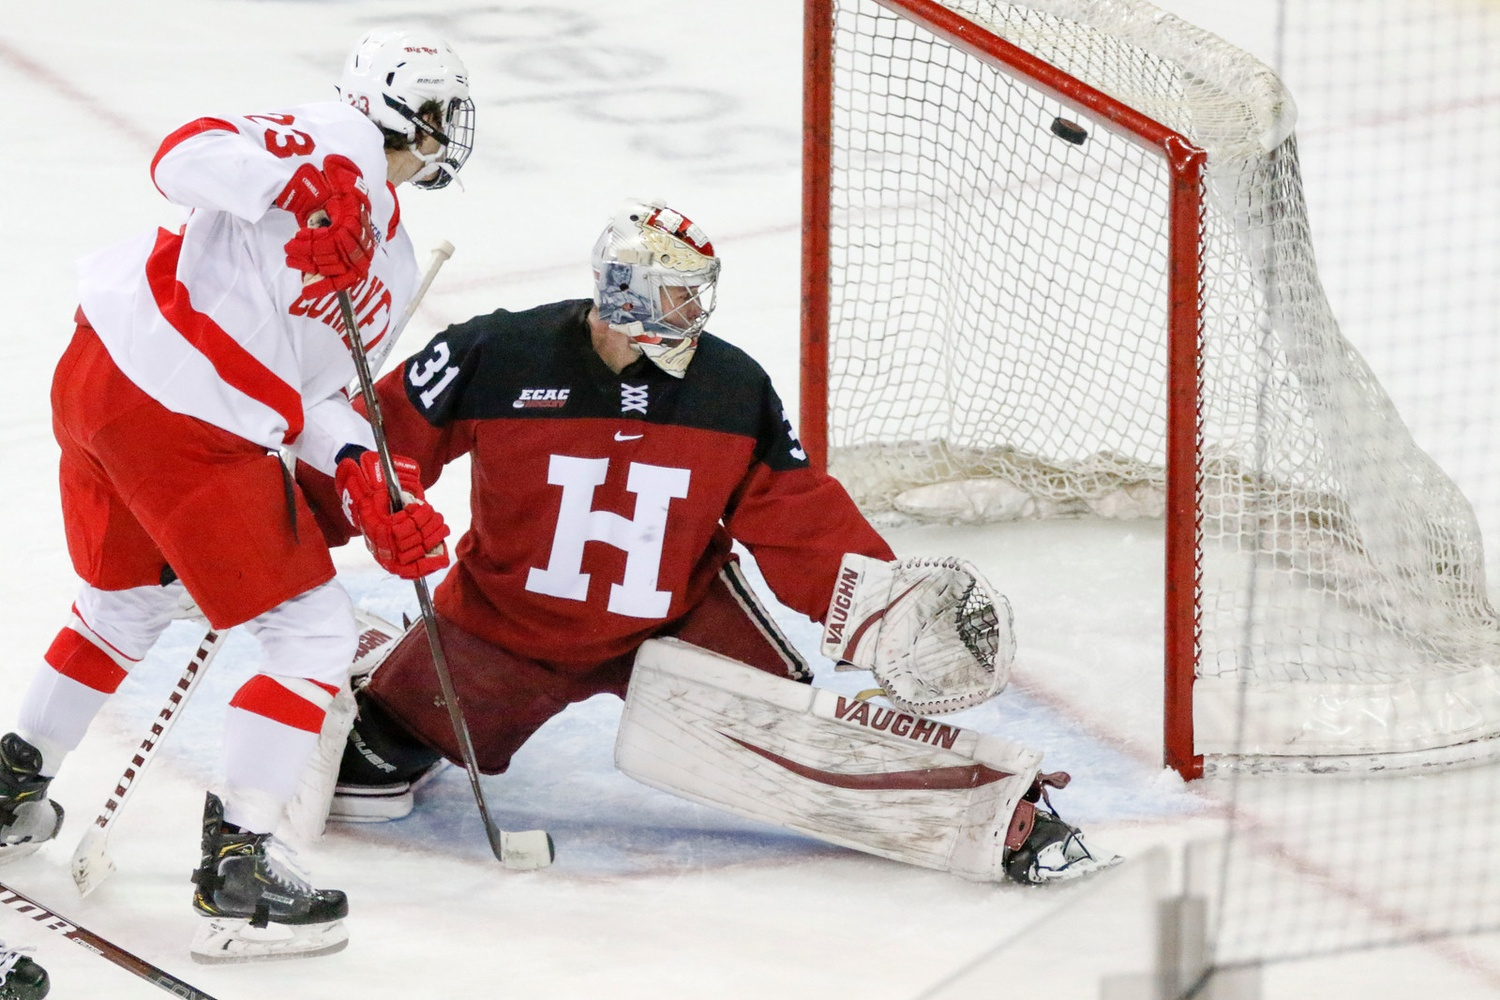 Cornell opened the scoring in the first period, courtesy of freshman forward Liam Motley's deflection. Harvard also ceded the first goal in its previous three MSG bouts.